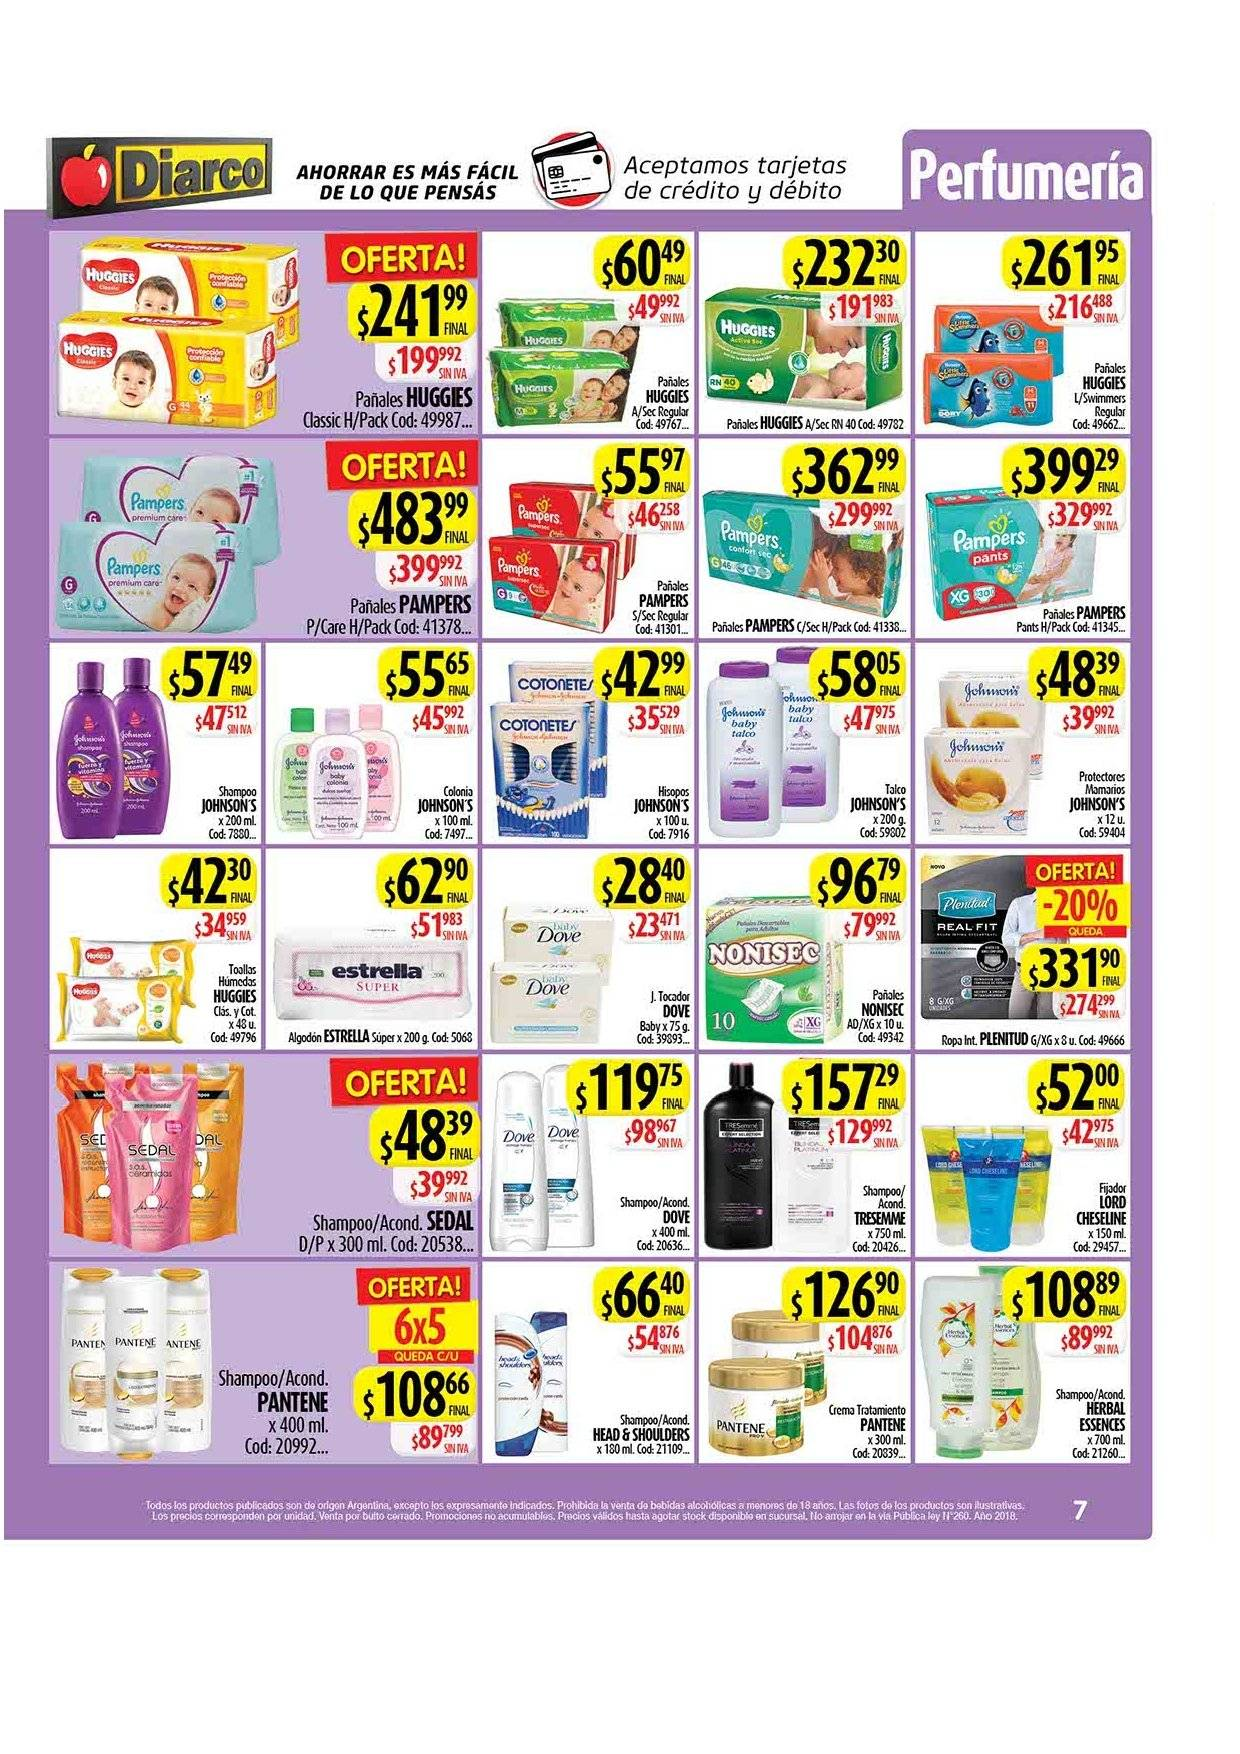 Folleto actual Diarco - 2.1.2019 - 5.1.2019 - Ventas - bebida, dove, estrella, head, head & shoulders, huggies, pampers, pañales, pantene. Página 7.